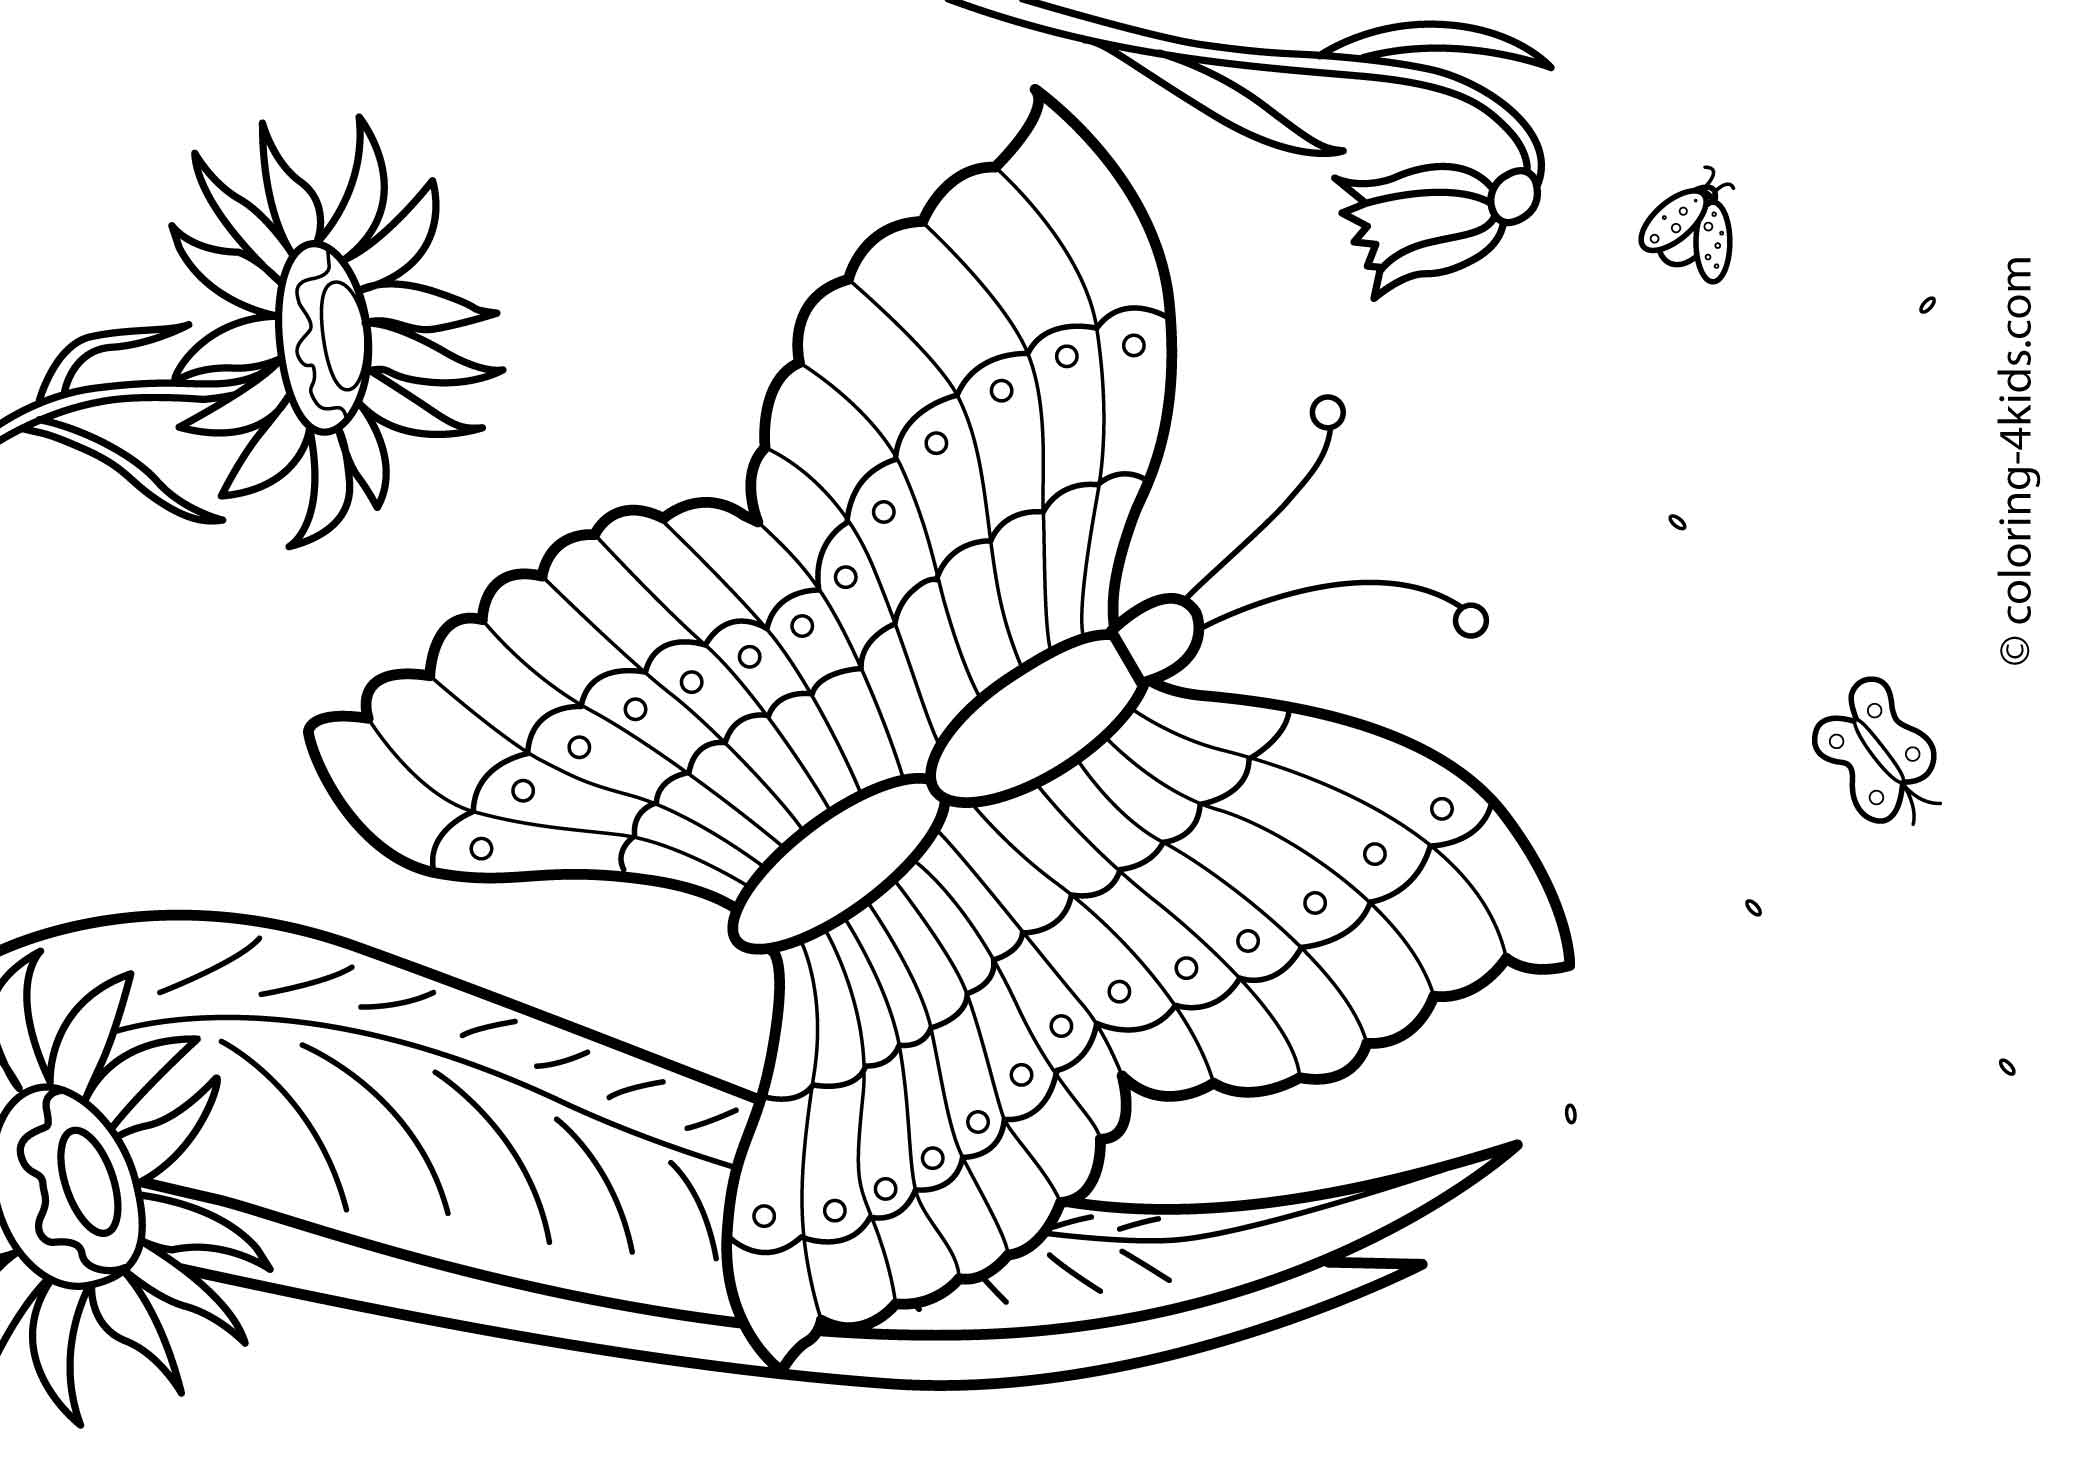 27 Summer season coloring pages part 2 | Free Printables